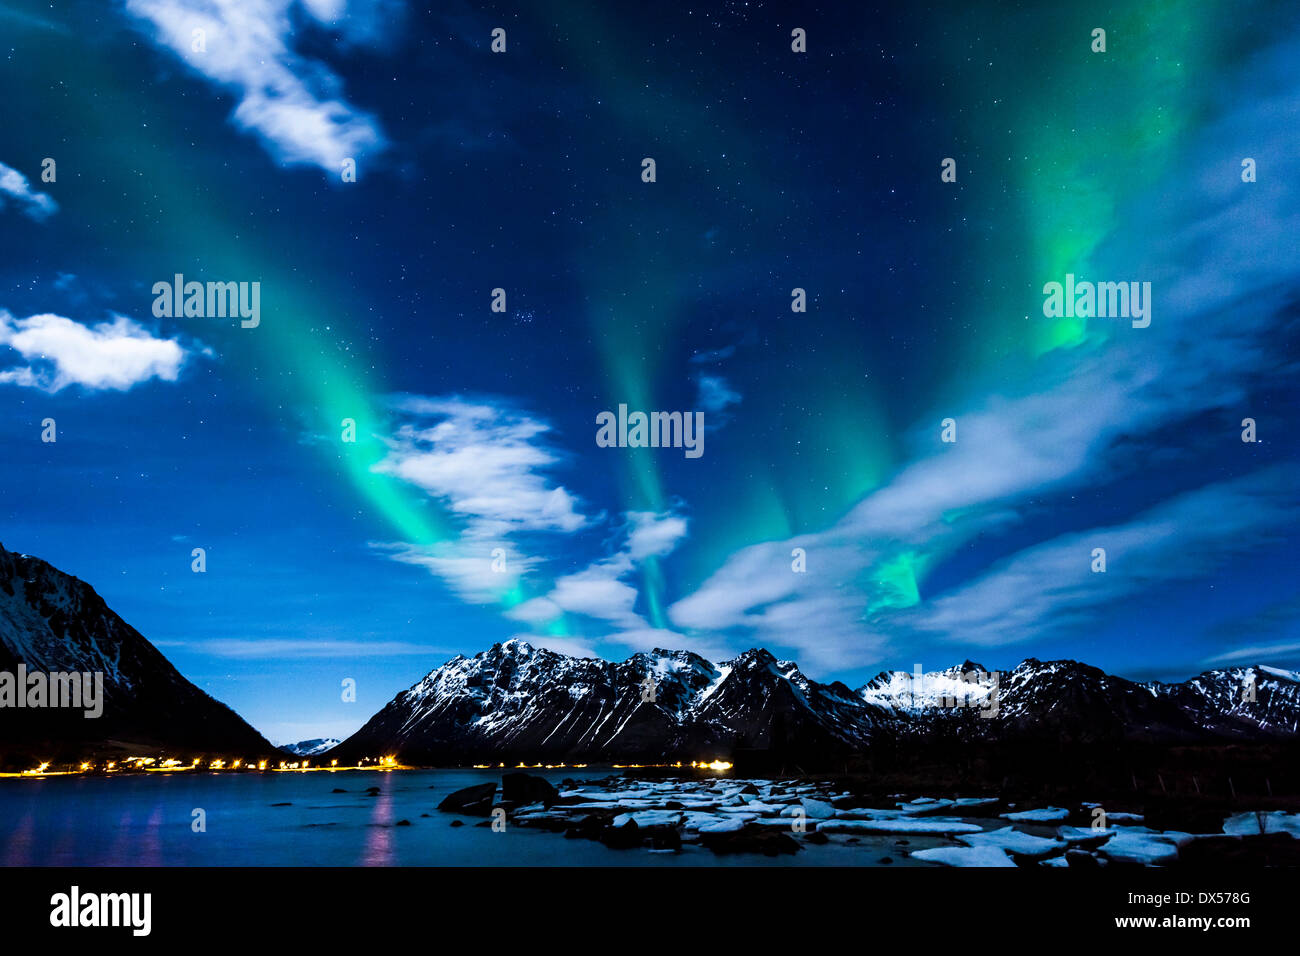 Northern Lights or Aurora Borealis, on the coast of Gimsøy, Gimsøya, Lofoten, Norway - Stock Image